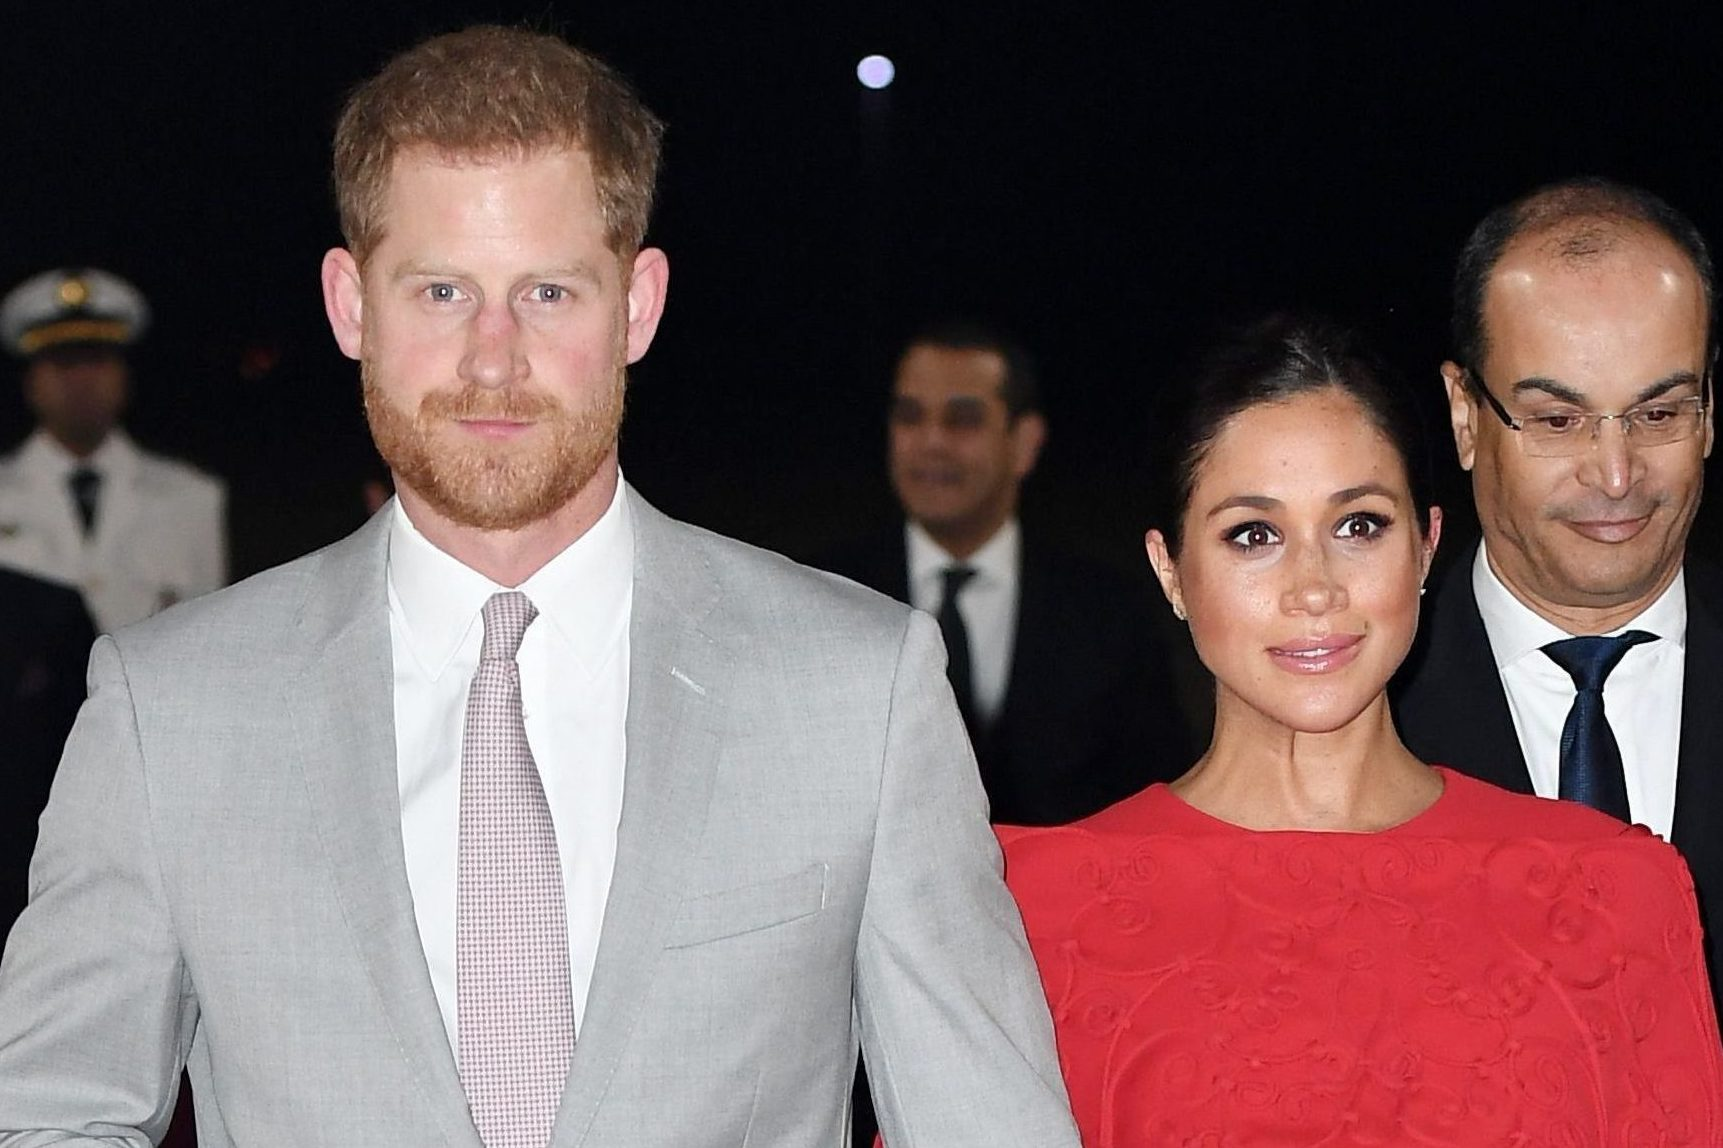 Pregnant Meghan Markle and Prince Harry sneak into London theatre to enjoy secret date night